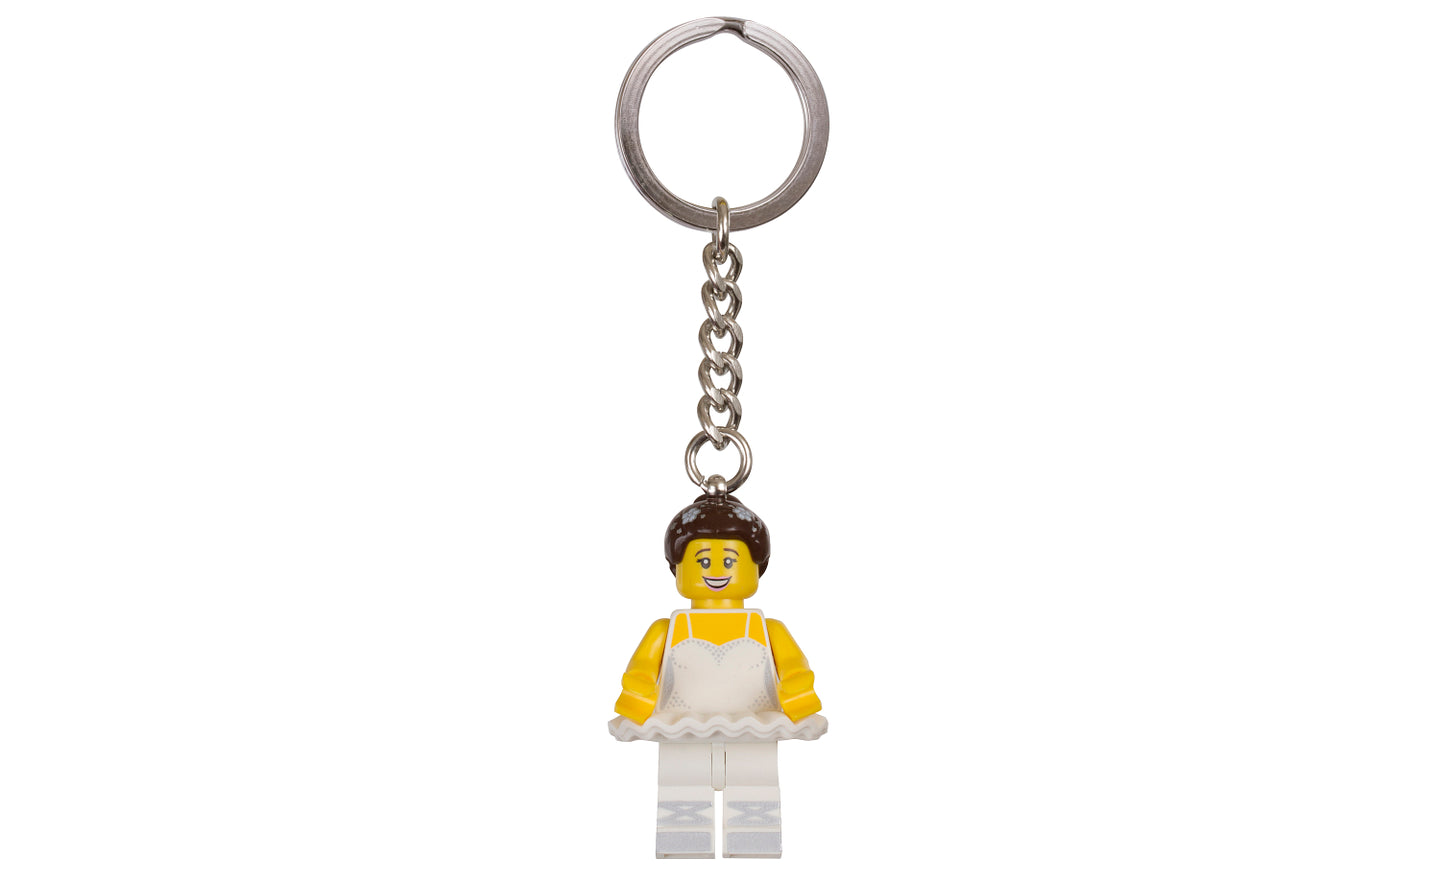 853667 | LEGO® Iconic Key Chain Ballerina